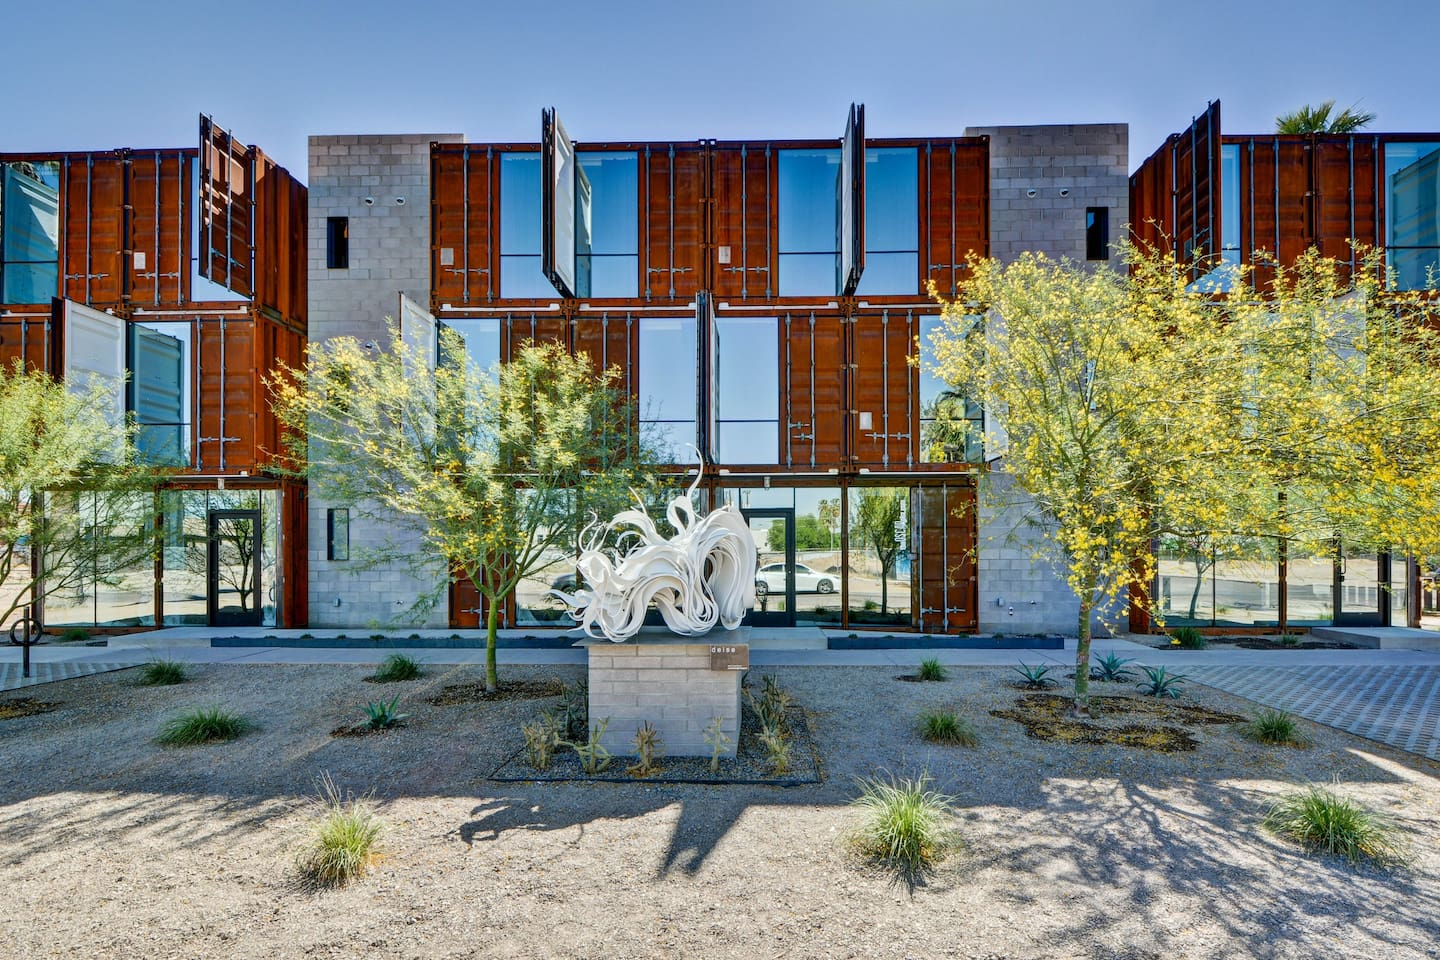 Converted shipping containers converted into beautiful homes!